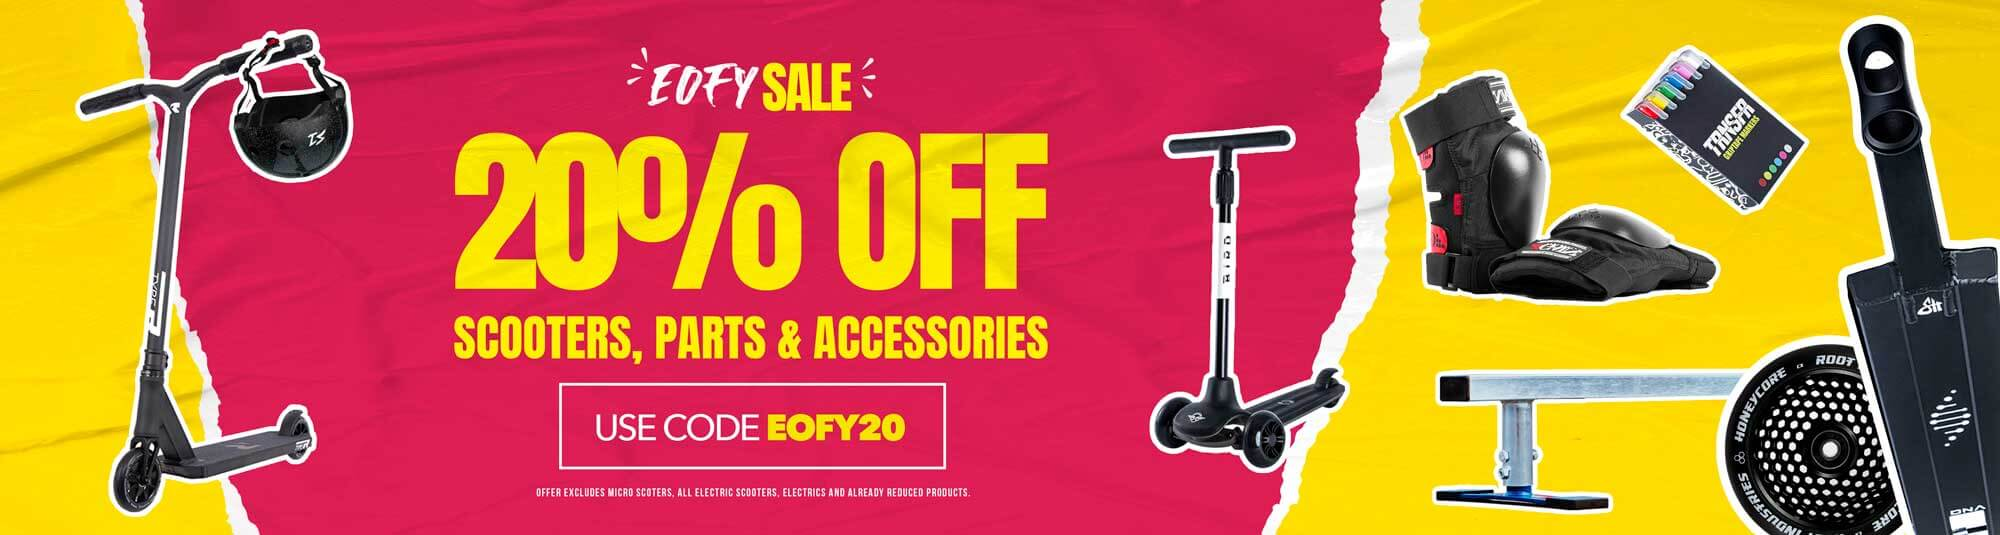 EOFY SALE 20% OFF SCOOTERS PARTS & ACCESSORIES